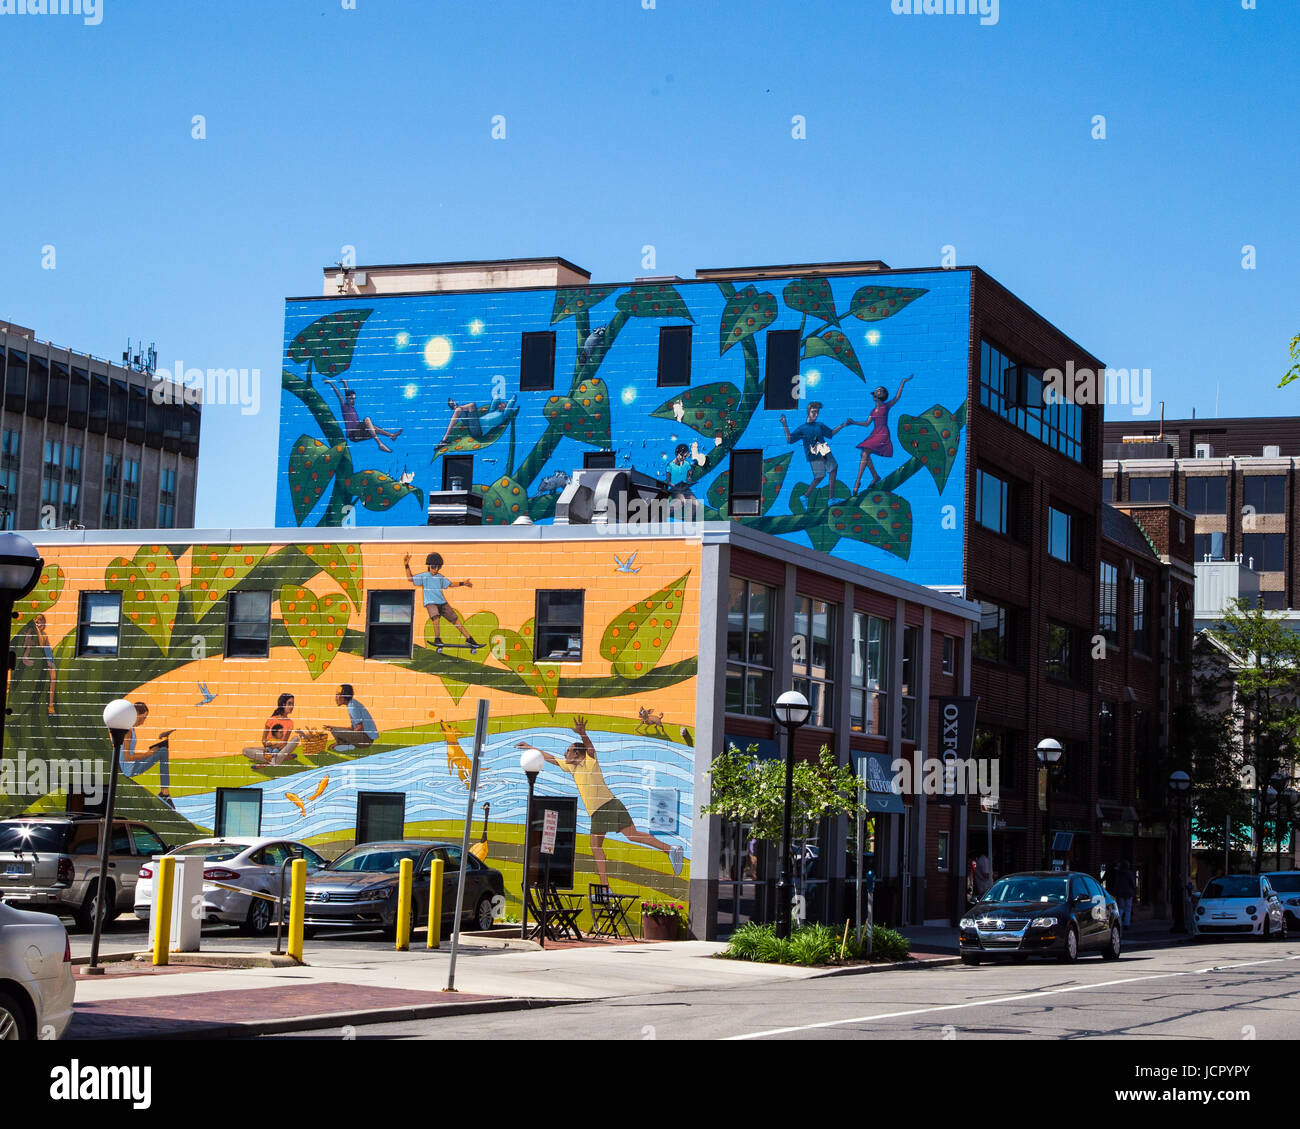 Wall murals grace the building wall in Ann Arbor Michigan - Stock Image